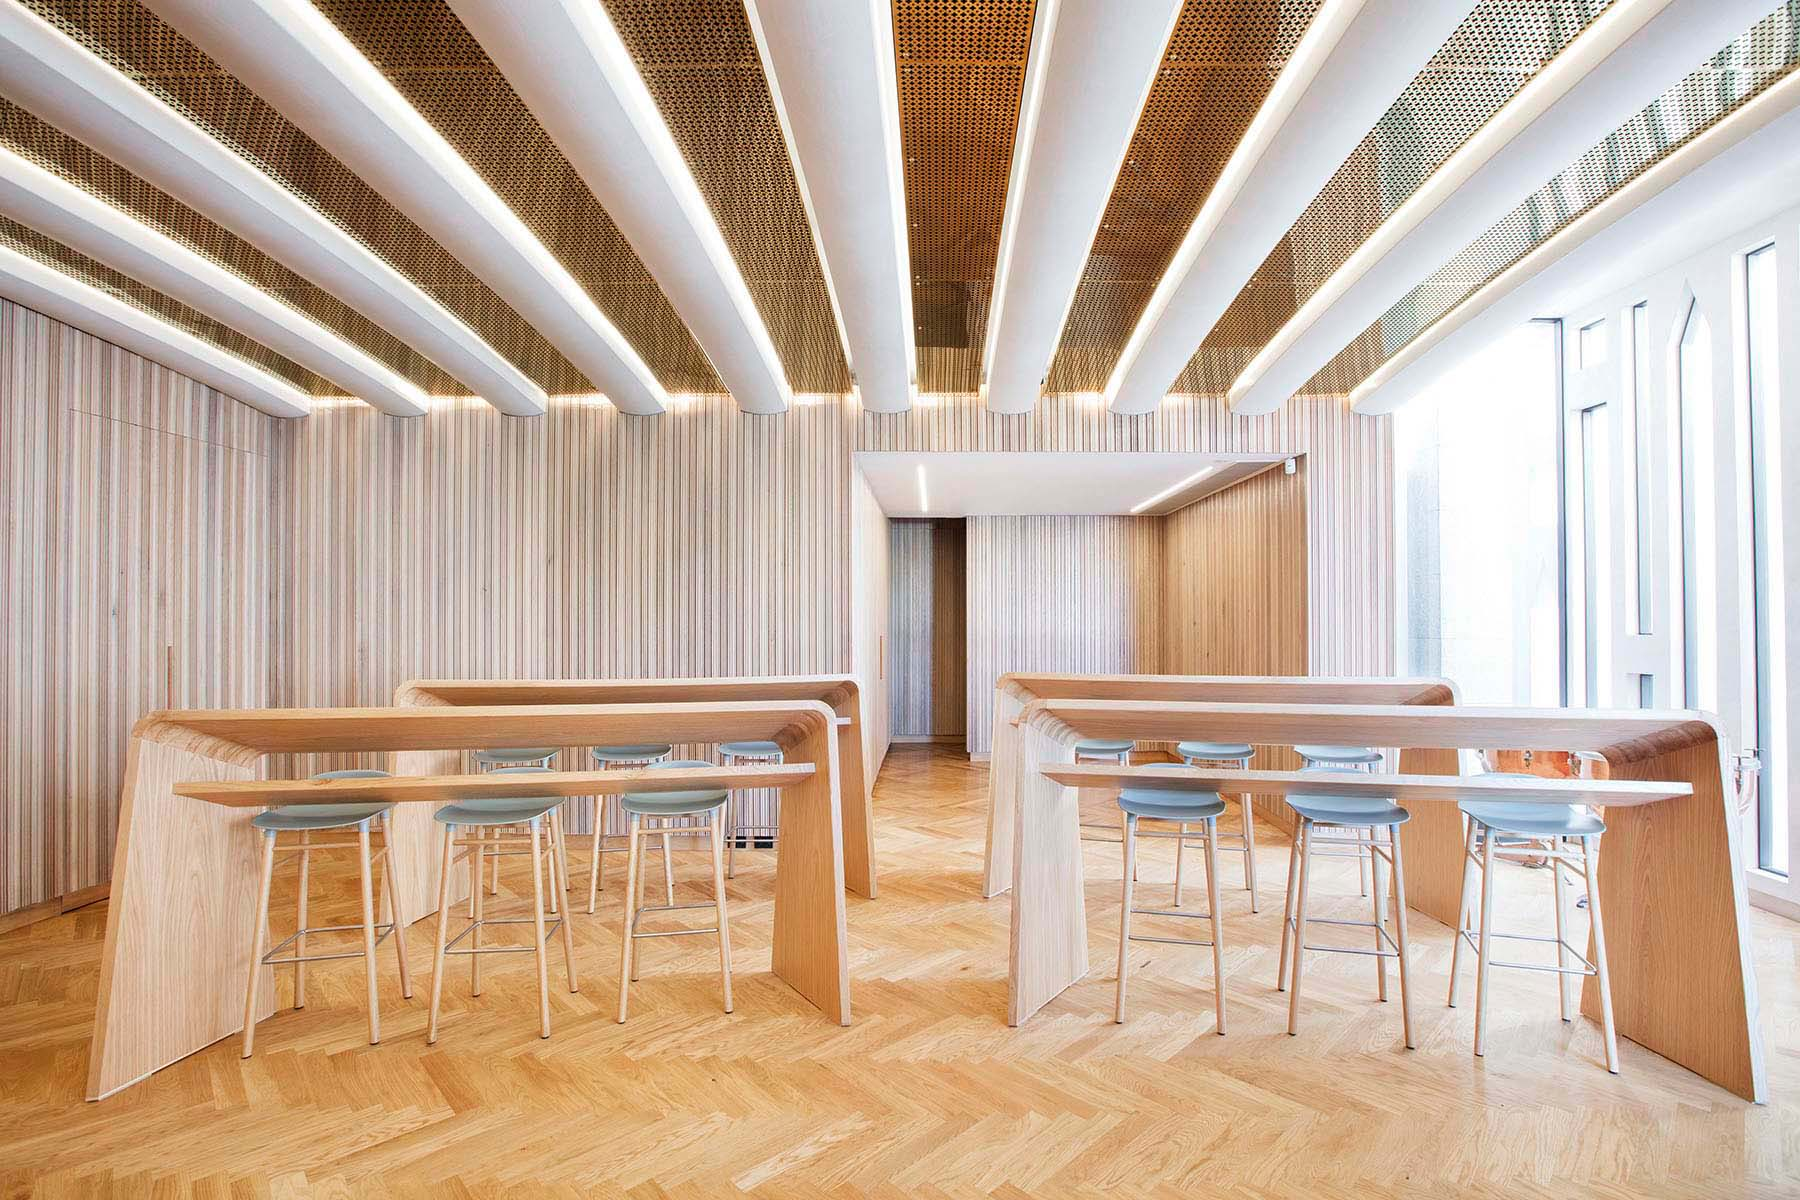 symmetrical interior of room made from vertical timber with chared desks and stools